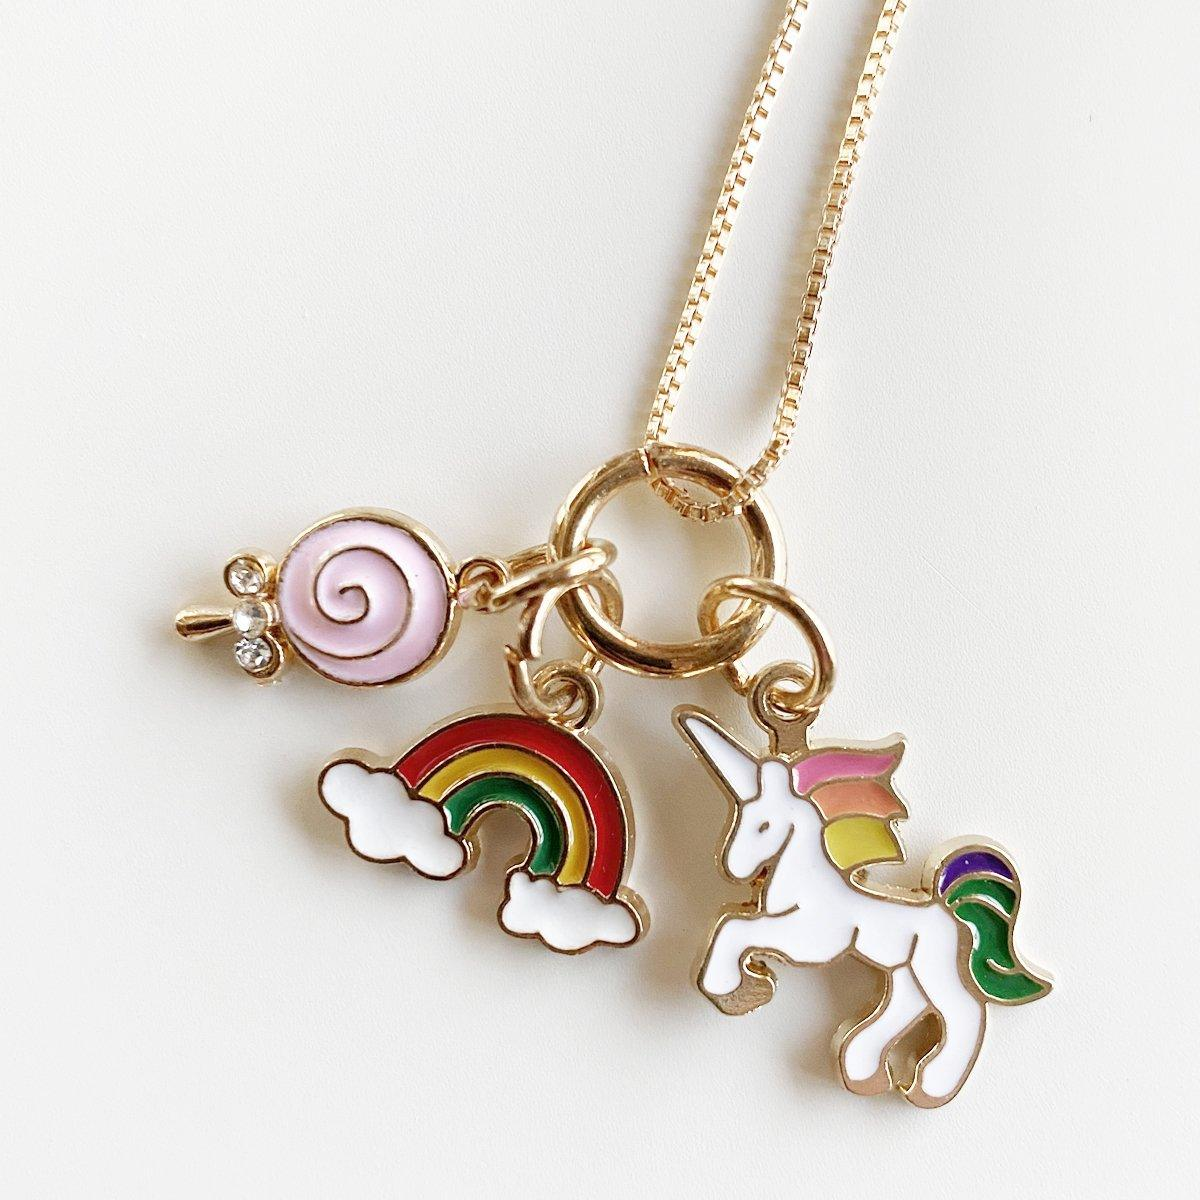 Unicorn & Rainbow Charm Necklace